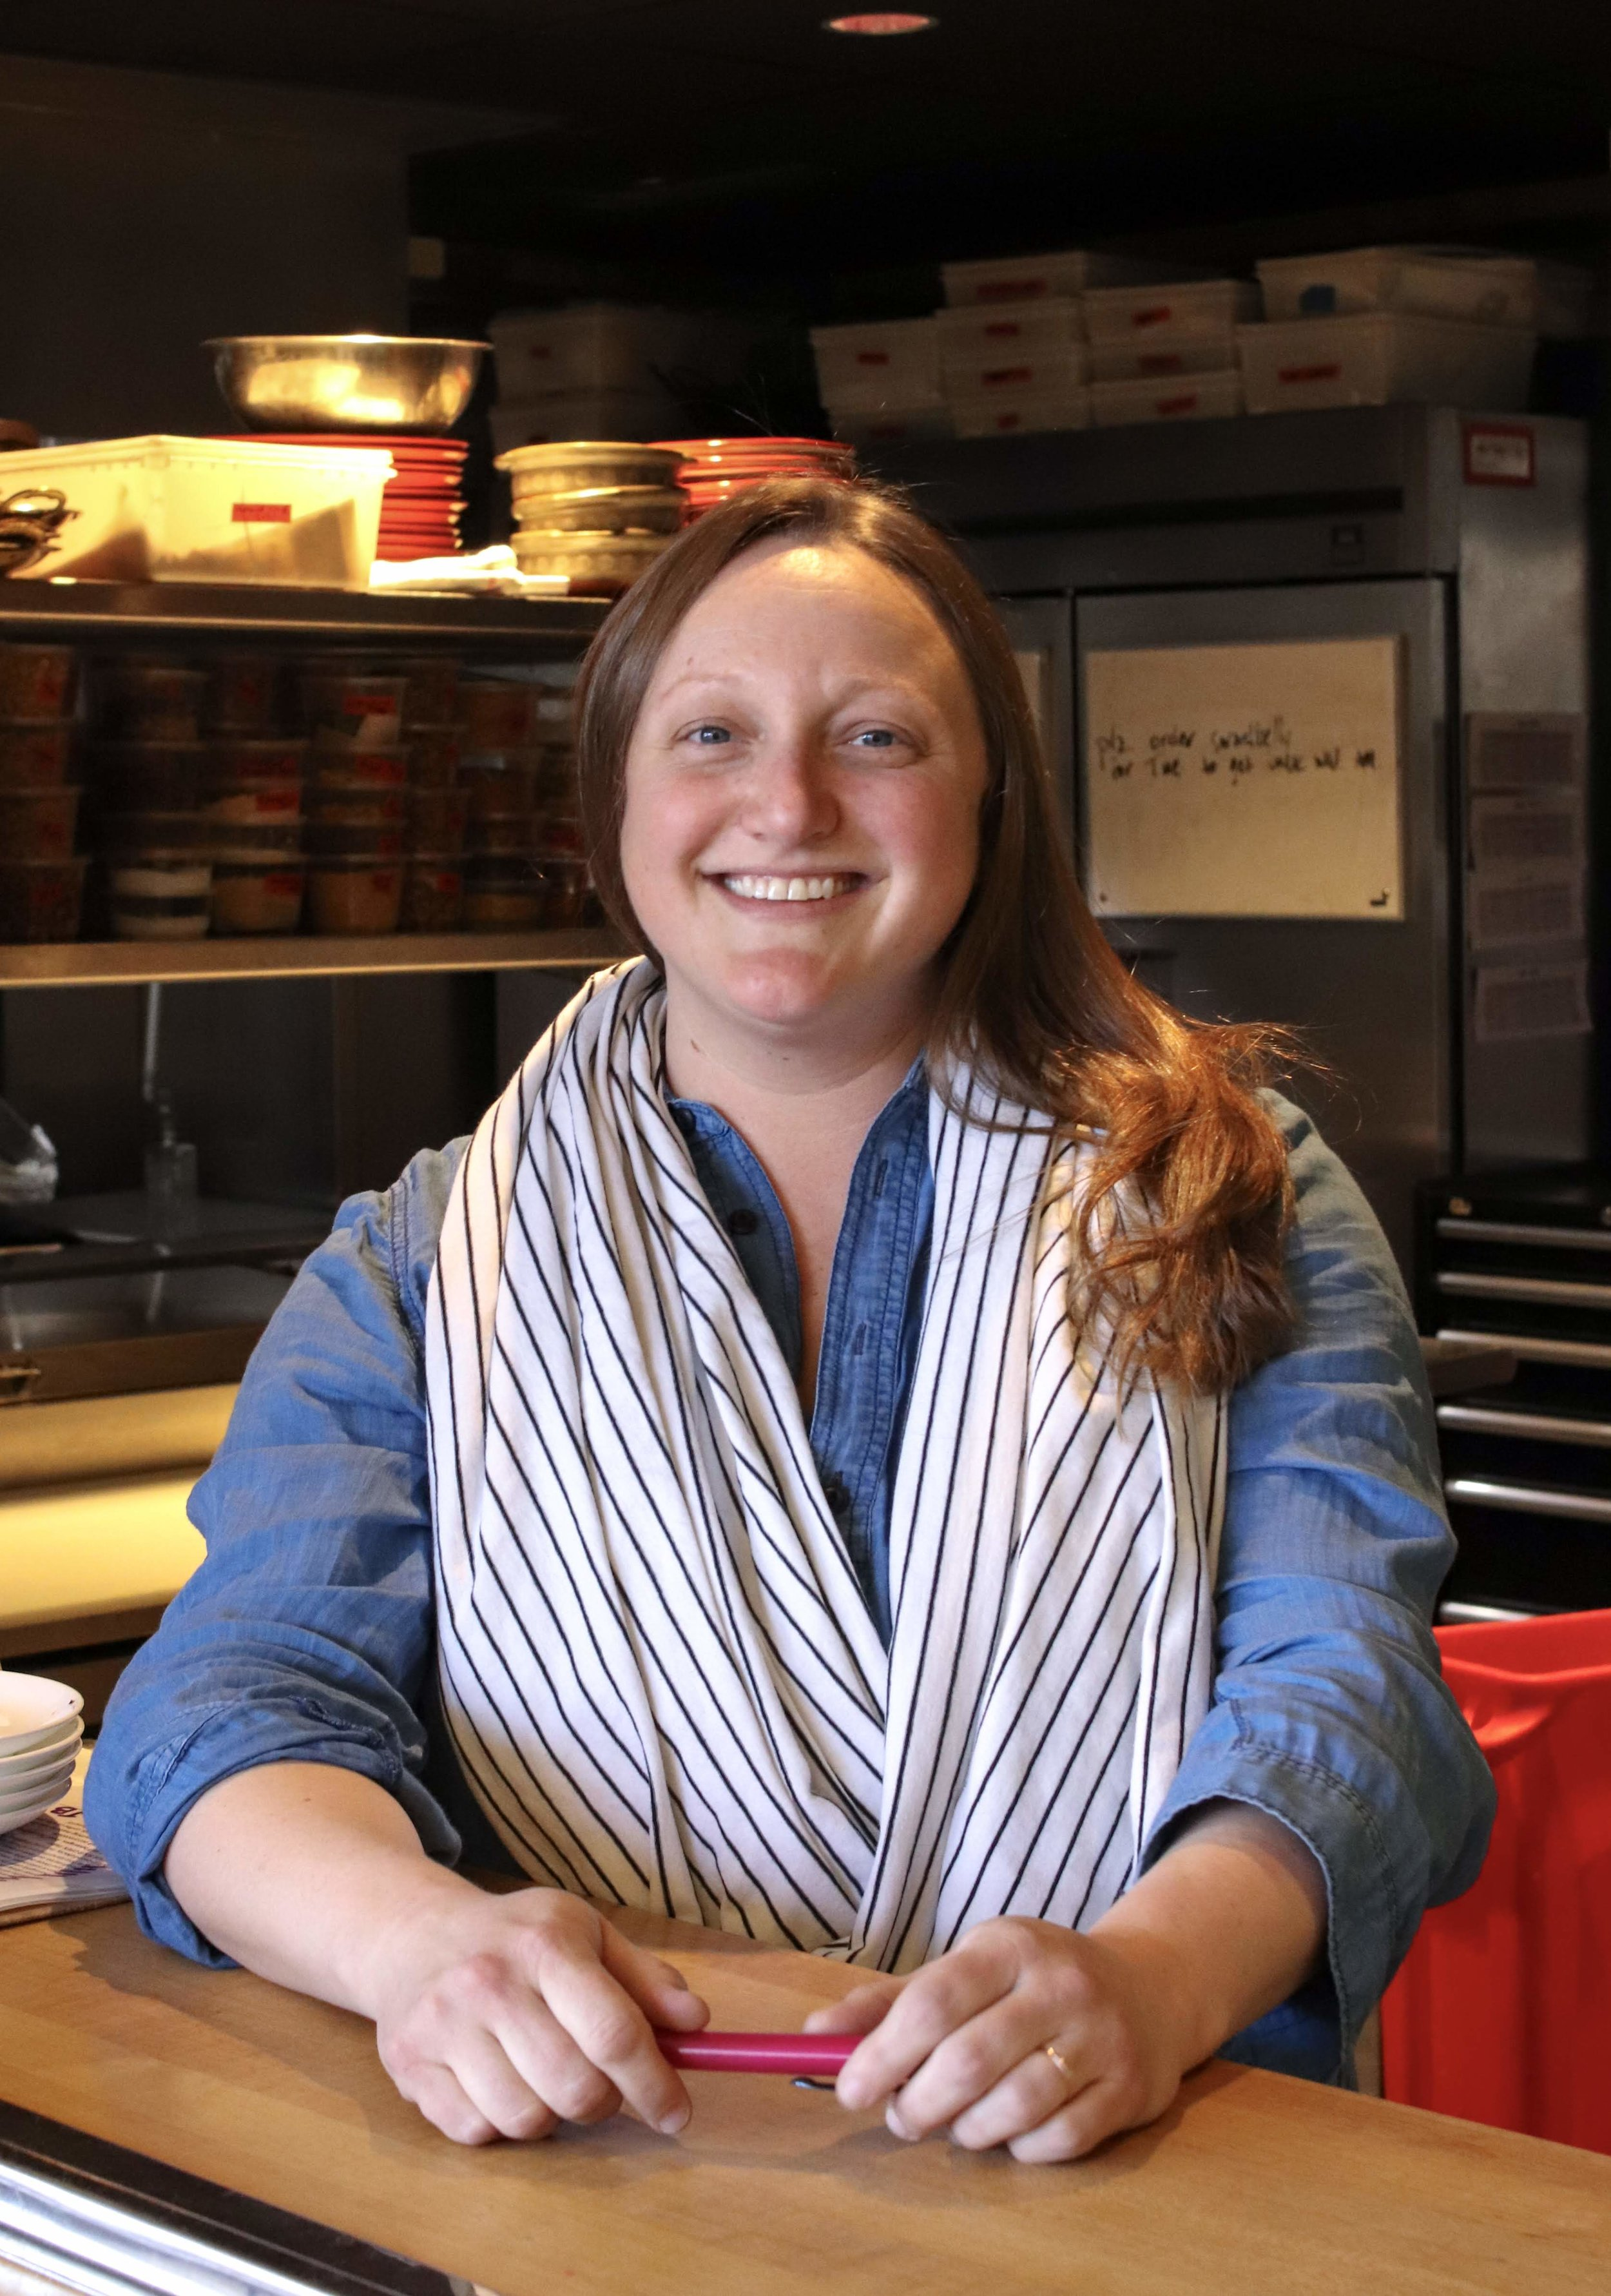 VALERIE GOLDMAN <br> The Honey Paw Sous Chef